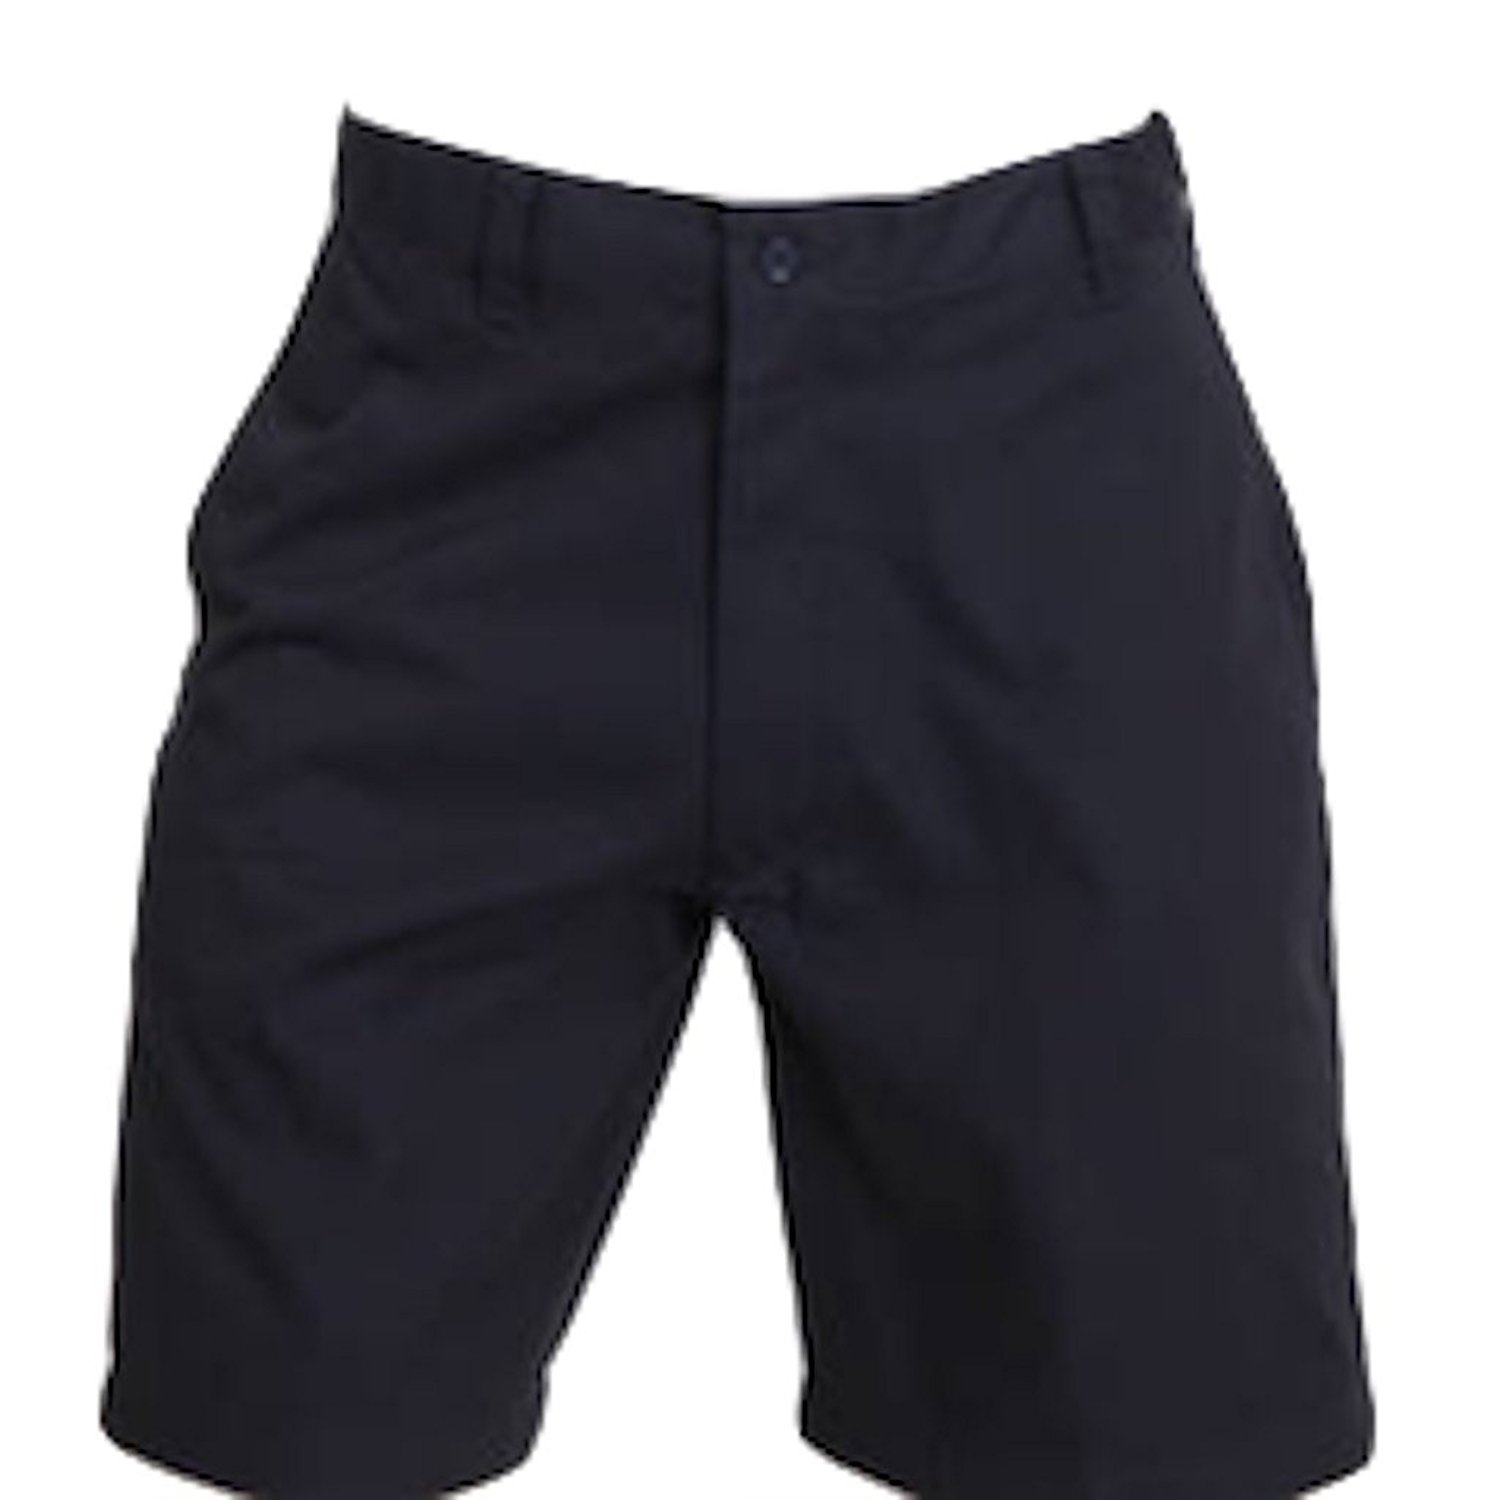 6dc1e58c841 Get Quotations · W S by Blue Collar Outlet Mens Shorts